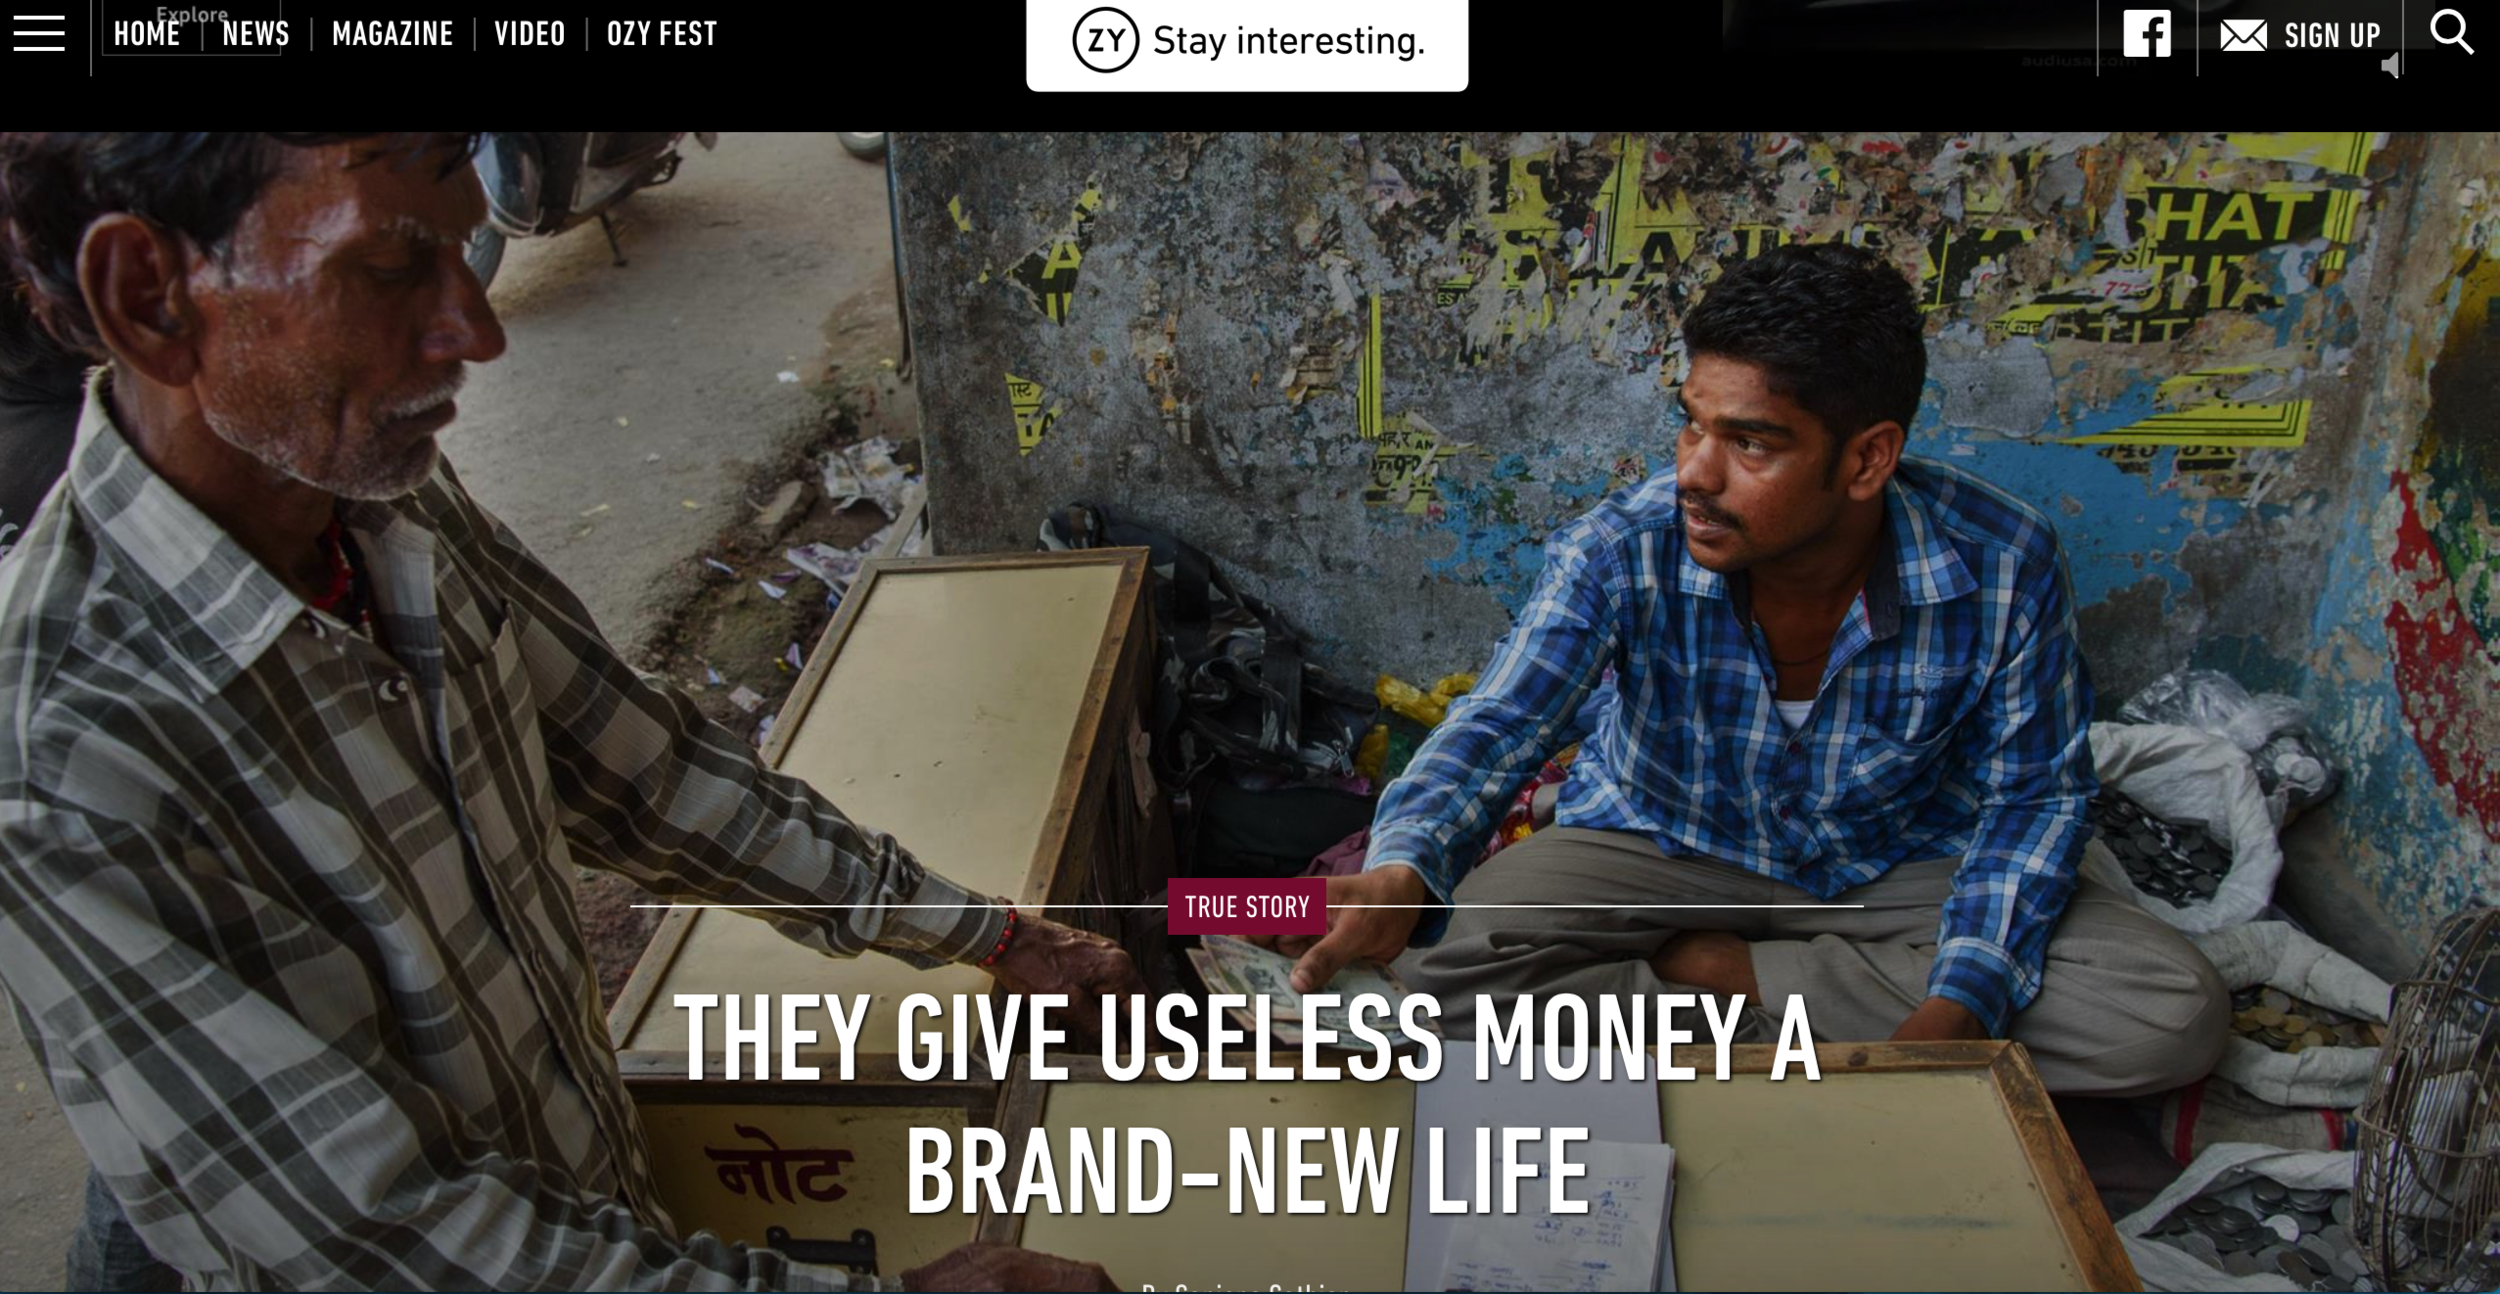 https://www.ozy.com/true-story/they-give-useless-money-a-brand-new-life/71632